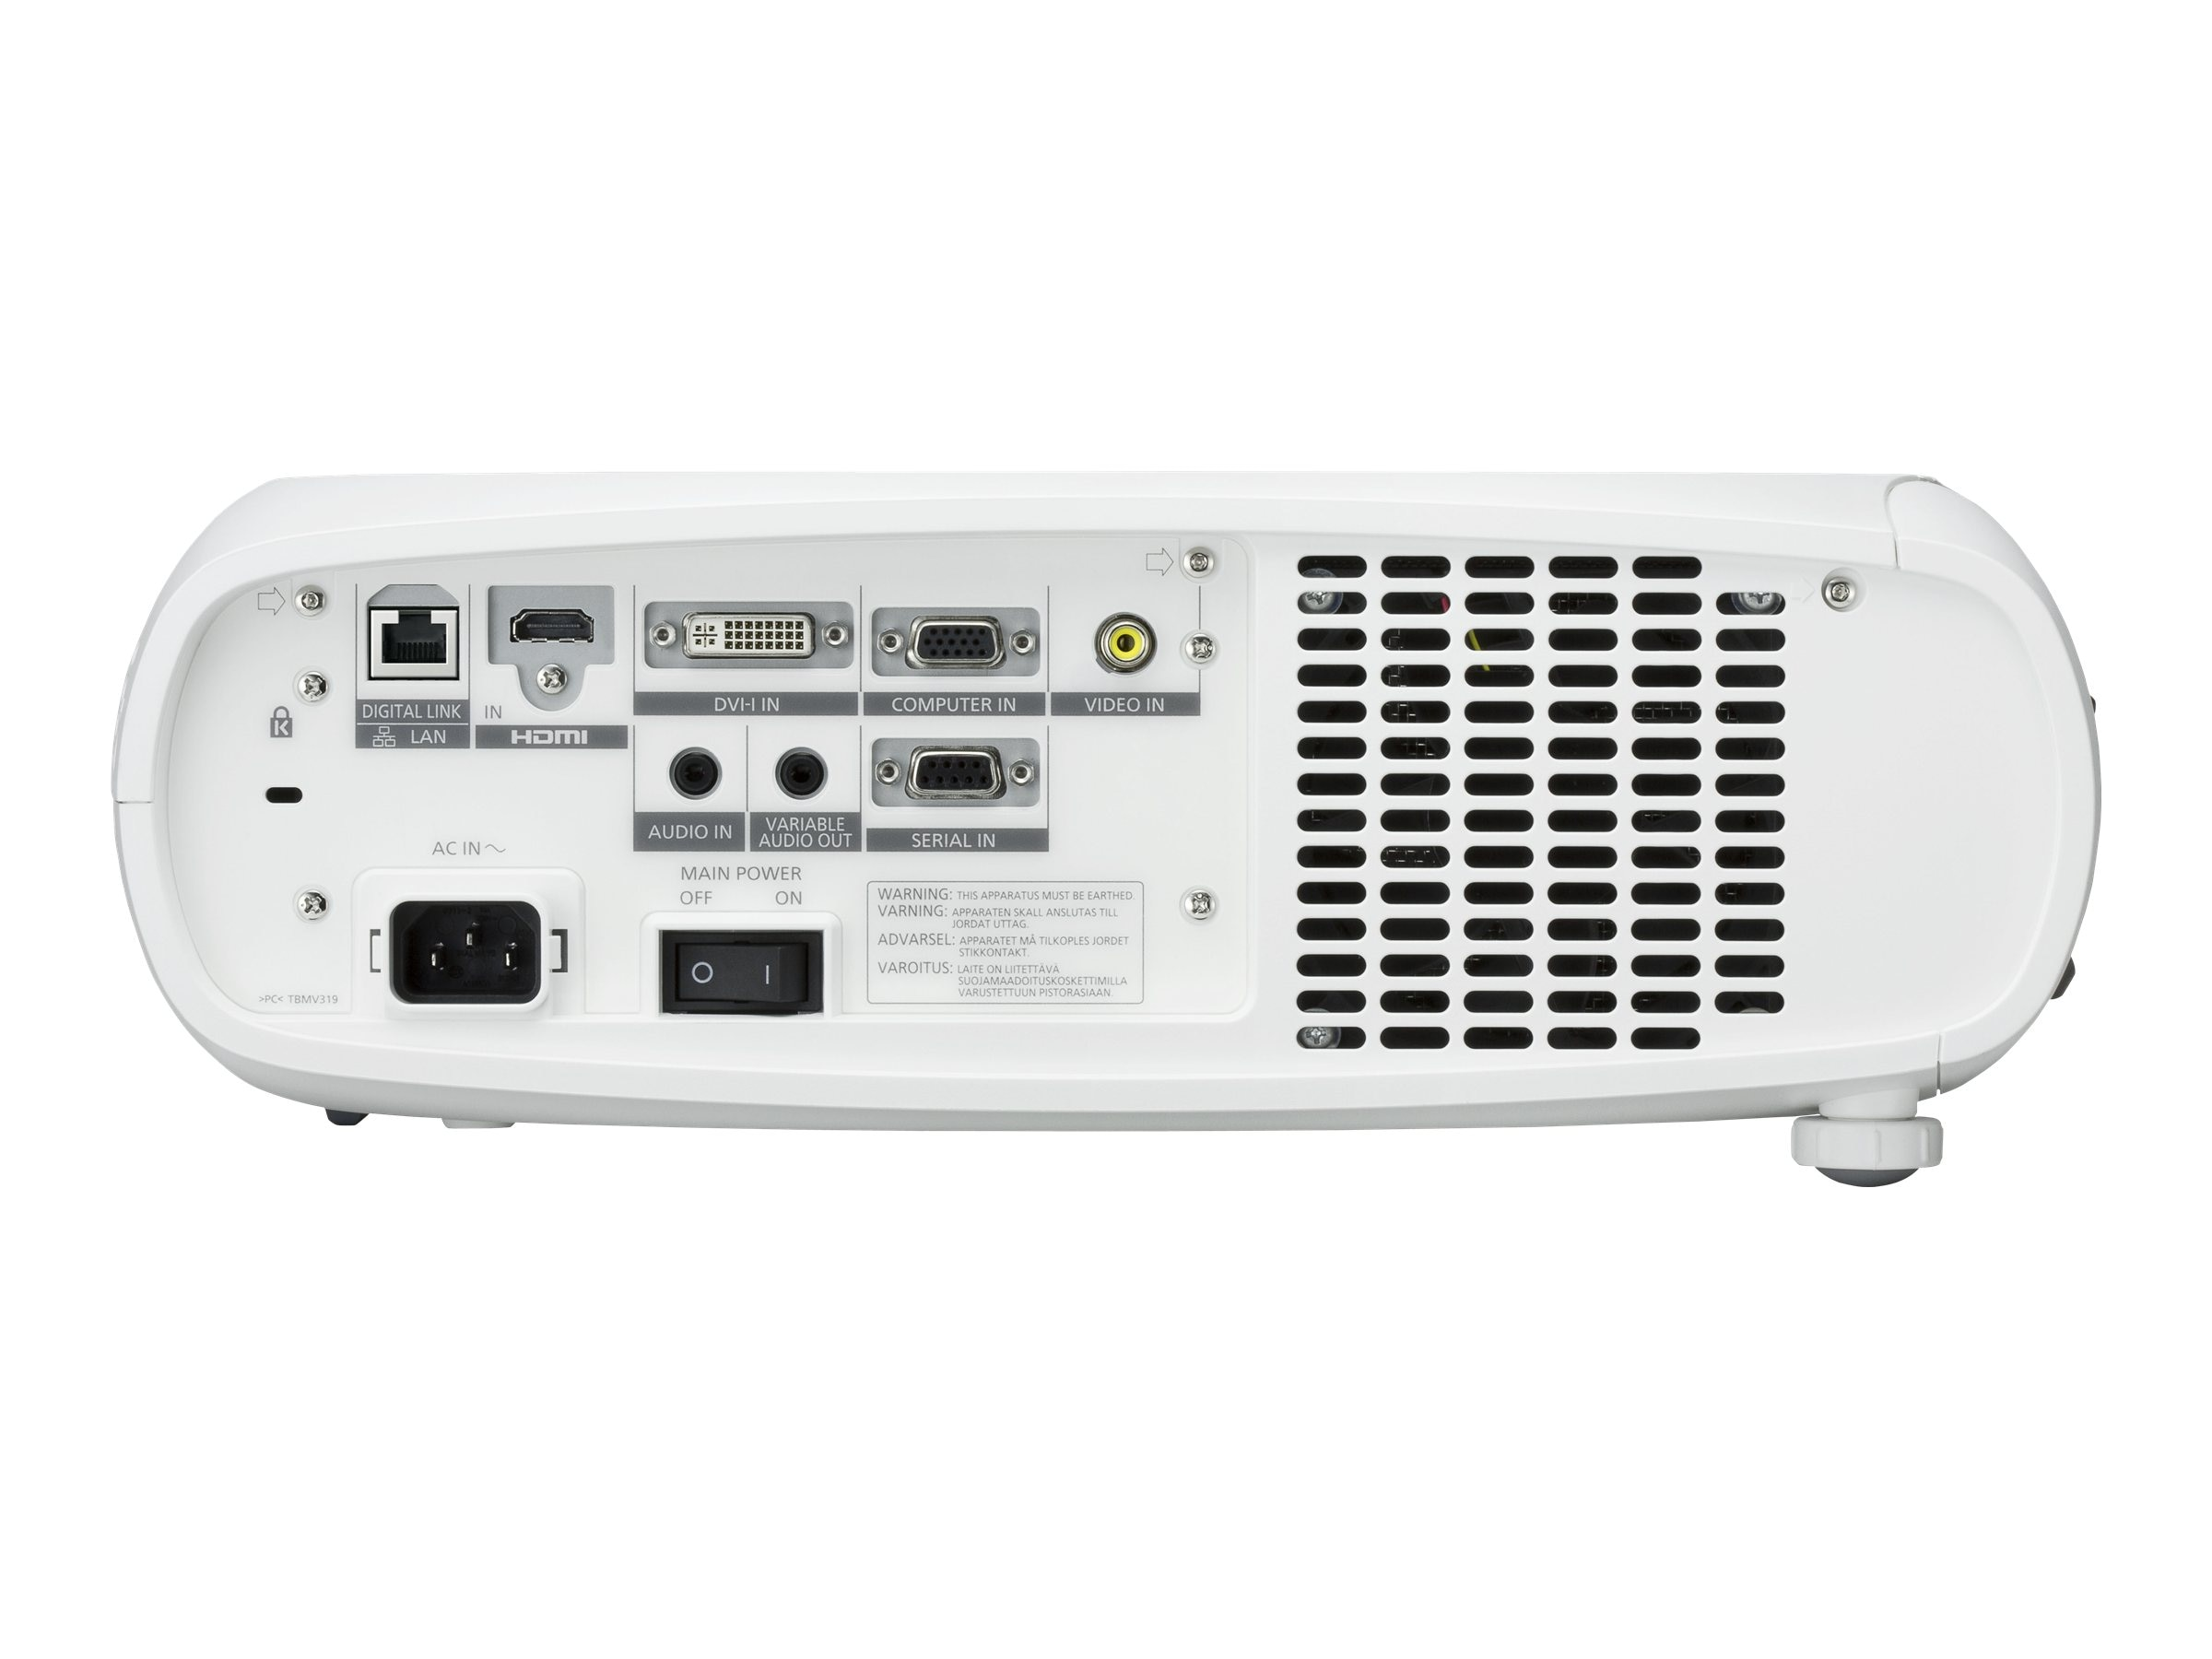 Panasonic PT-RW330U Fixed Installation Projector, PTRW330U